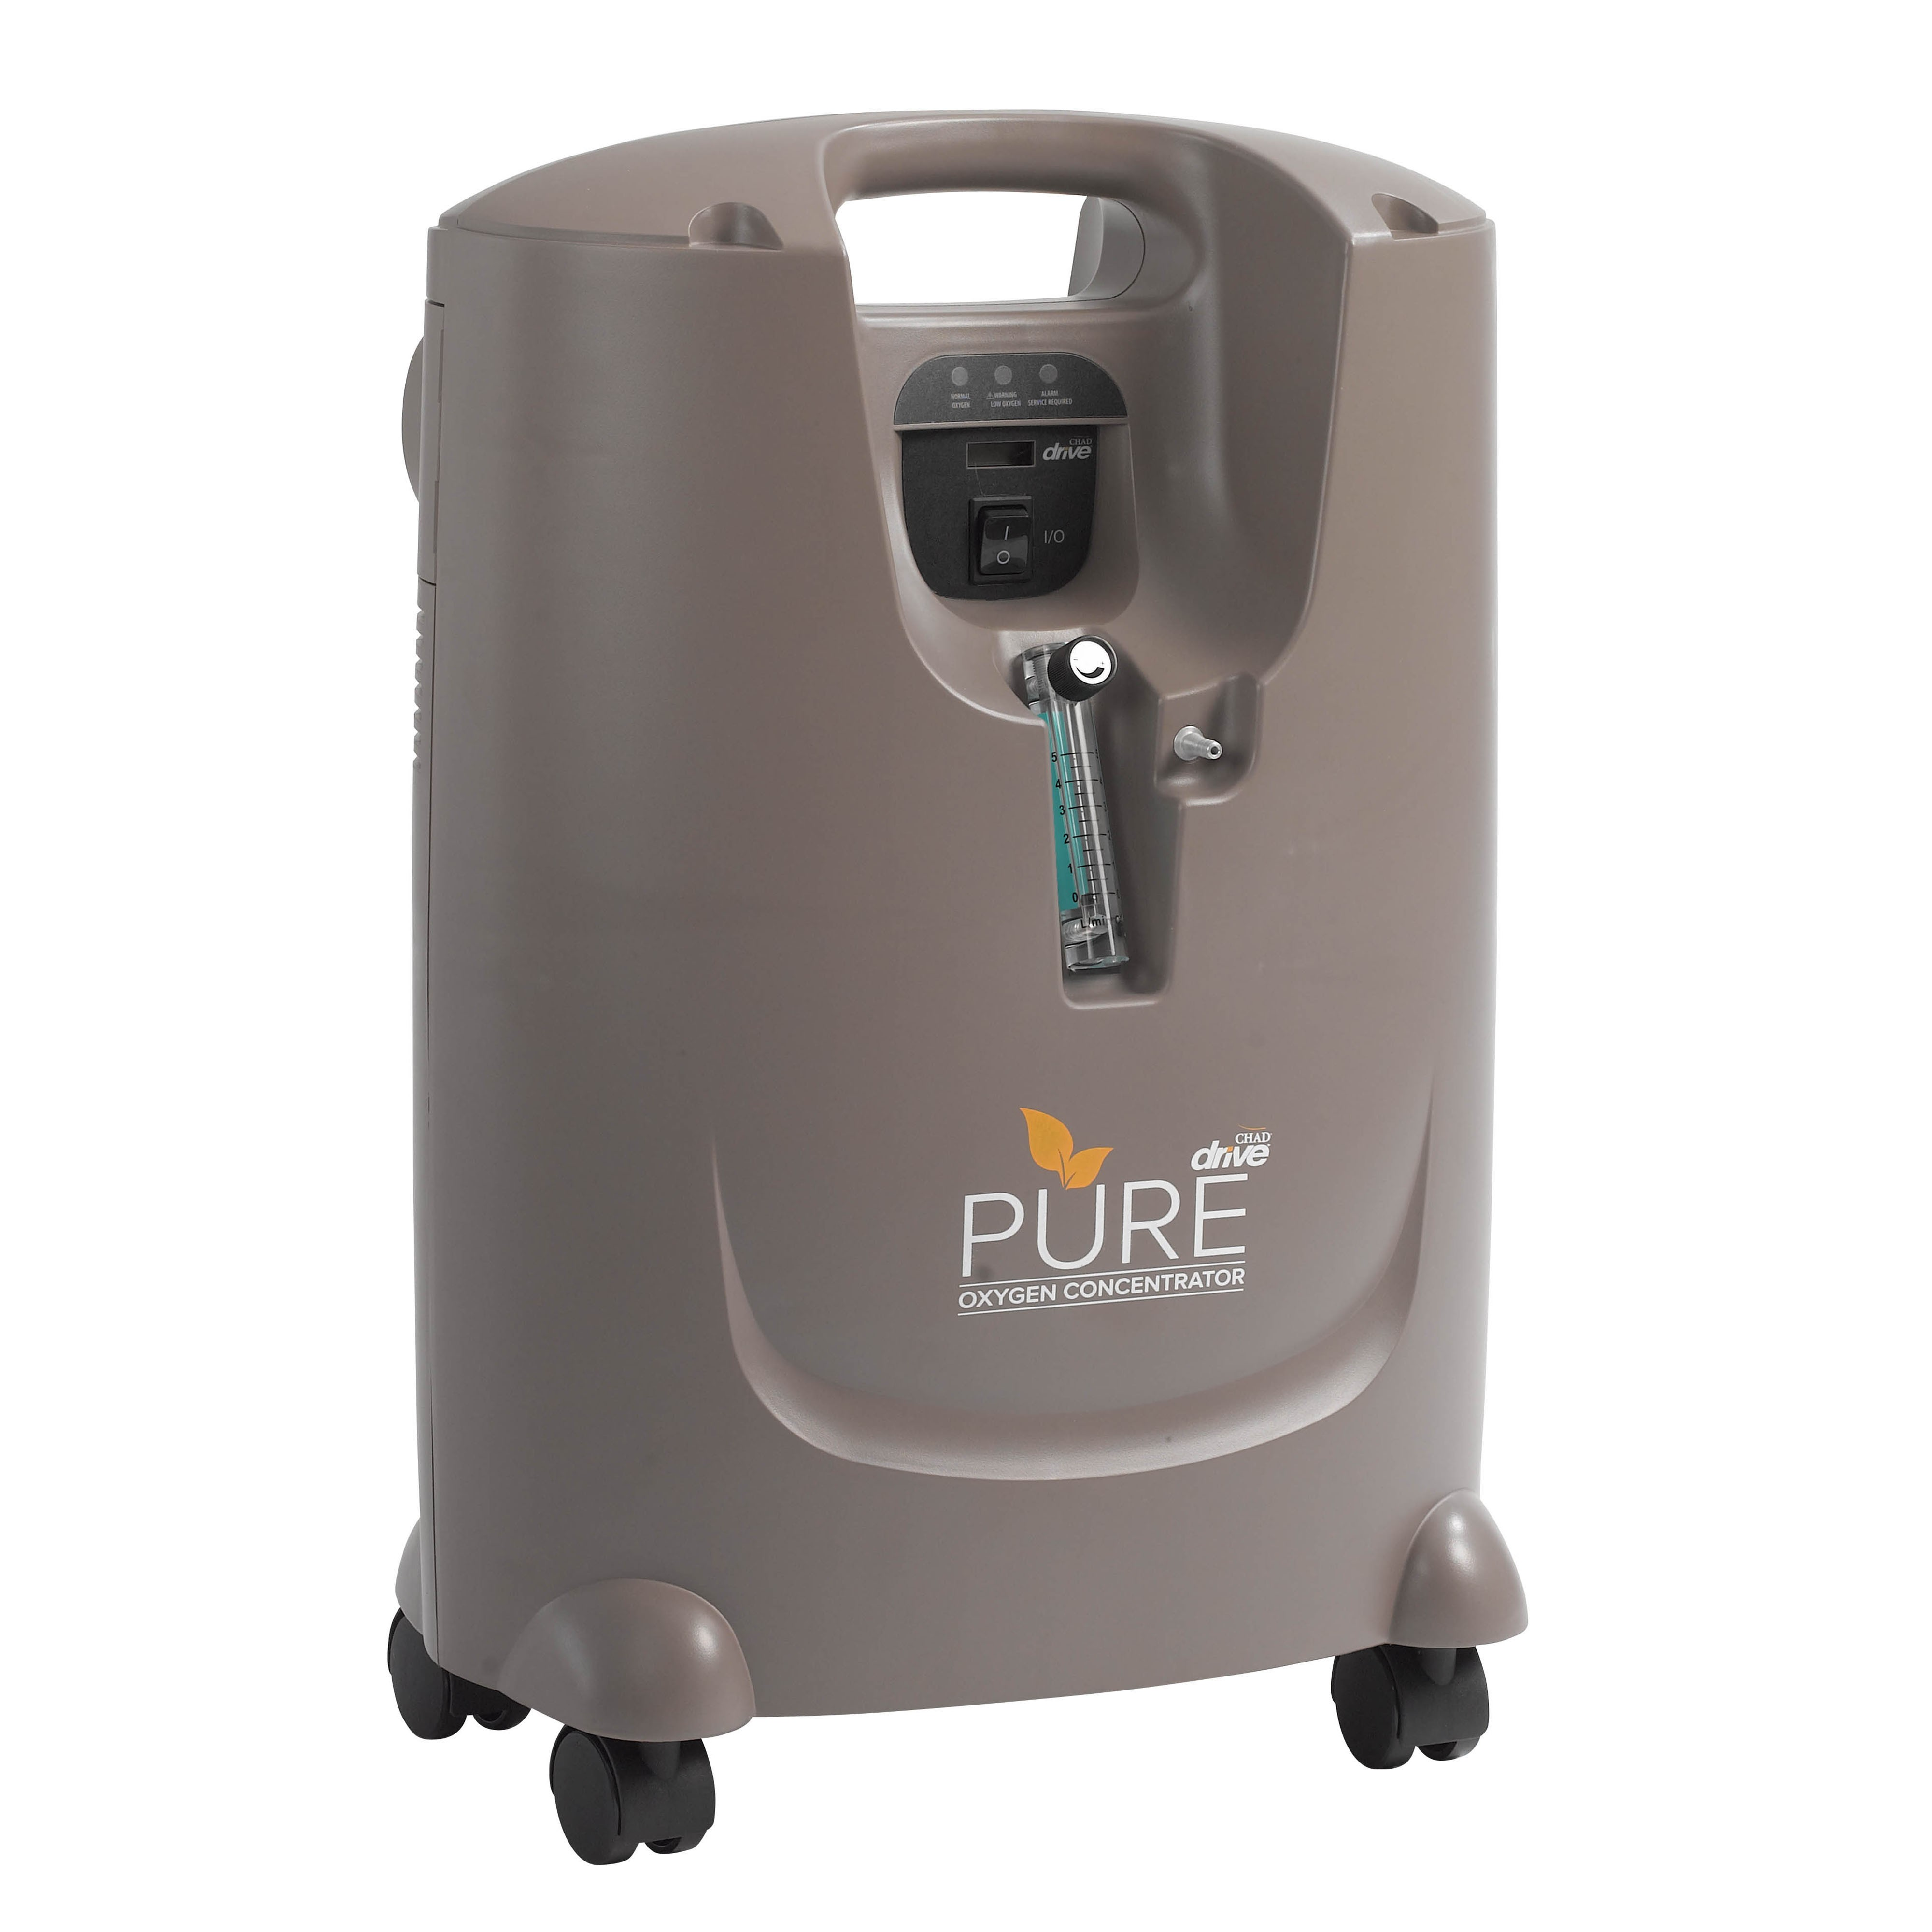 Drive DeVilbiss Healthcare Pure Oxygen Concentrator with Sensor